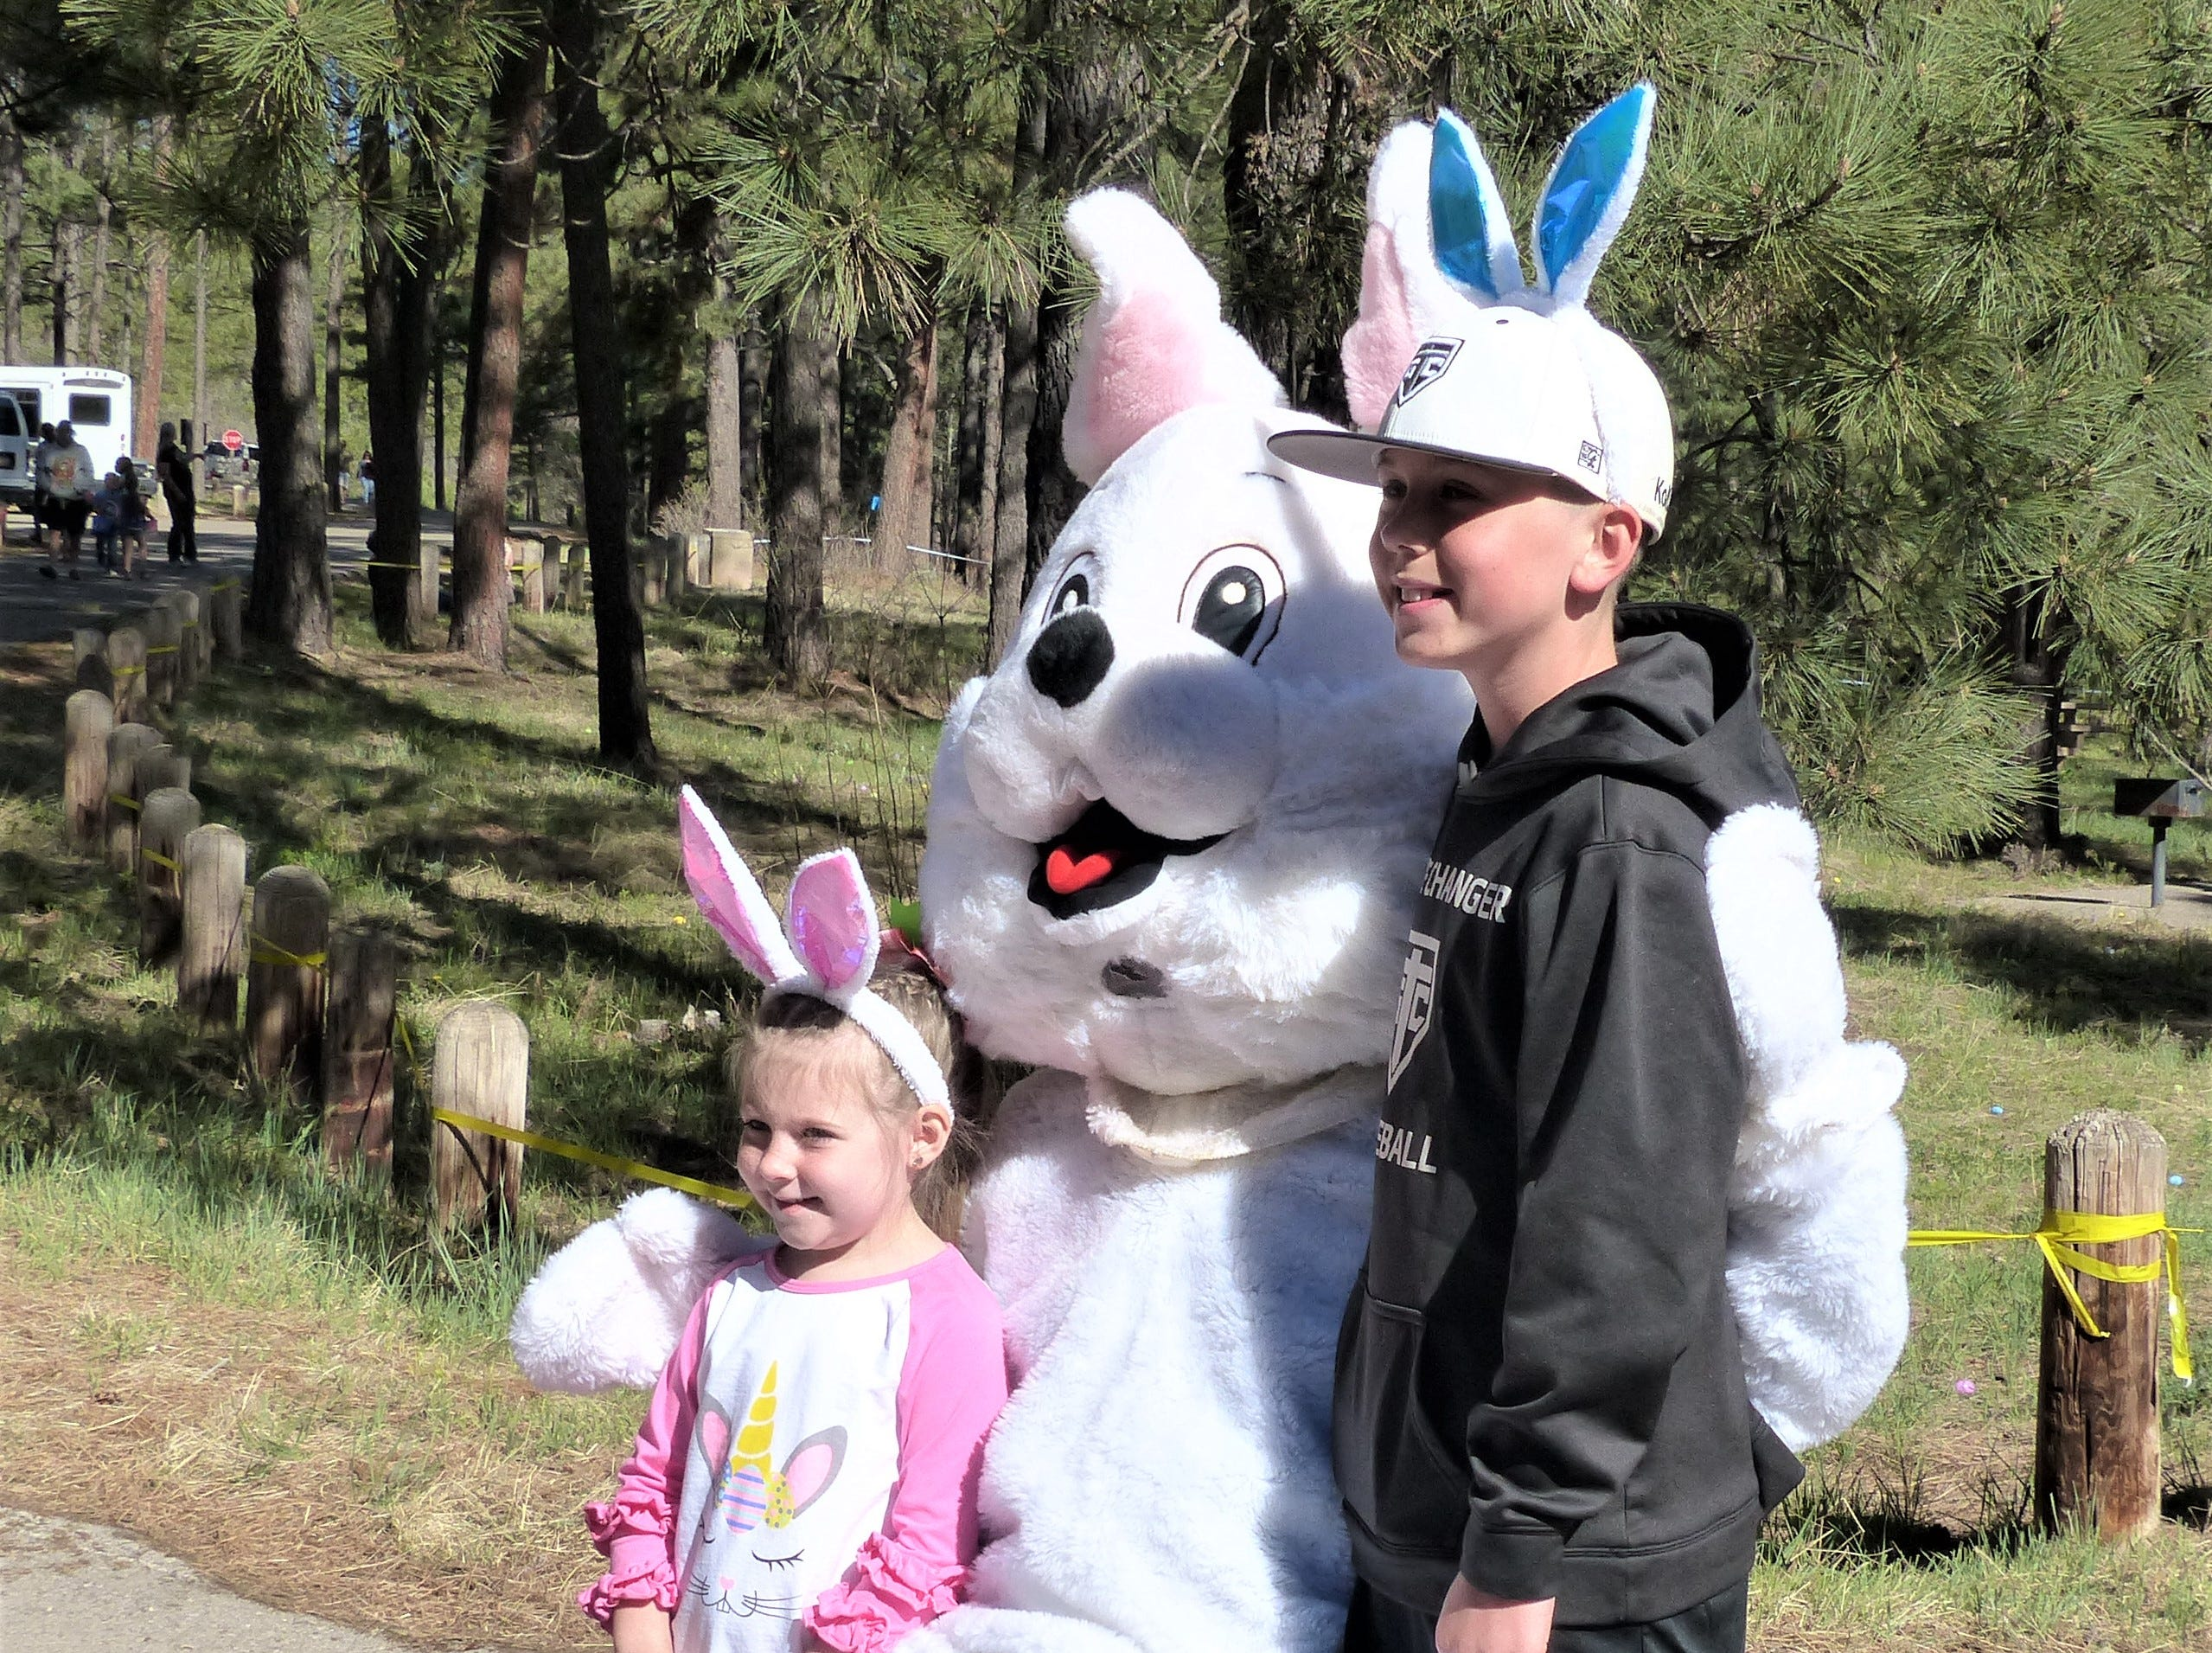 The Easter bunny brought smiles to the faces of most children, but a few shed tears despite his happy face.